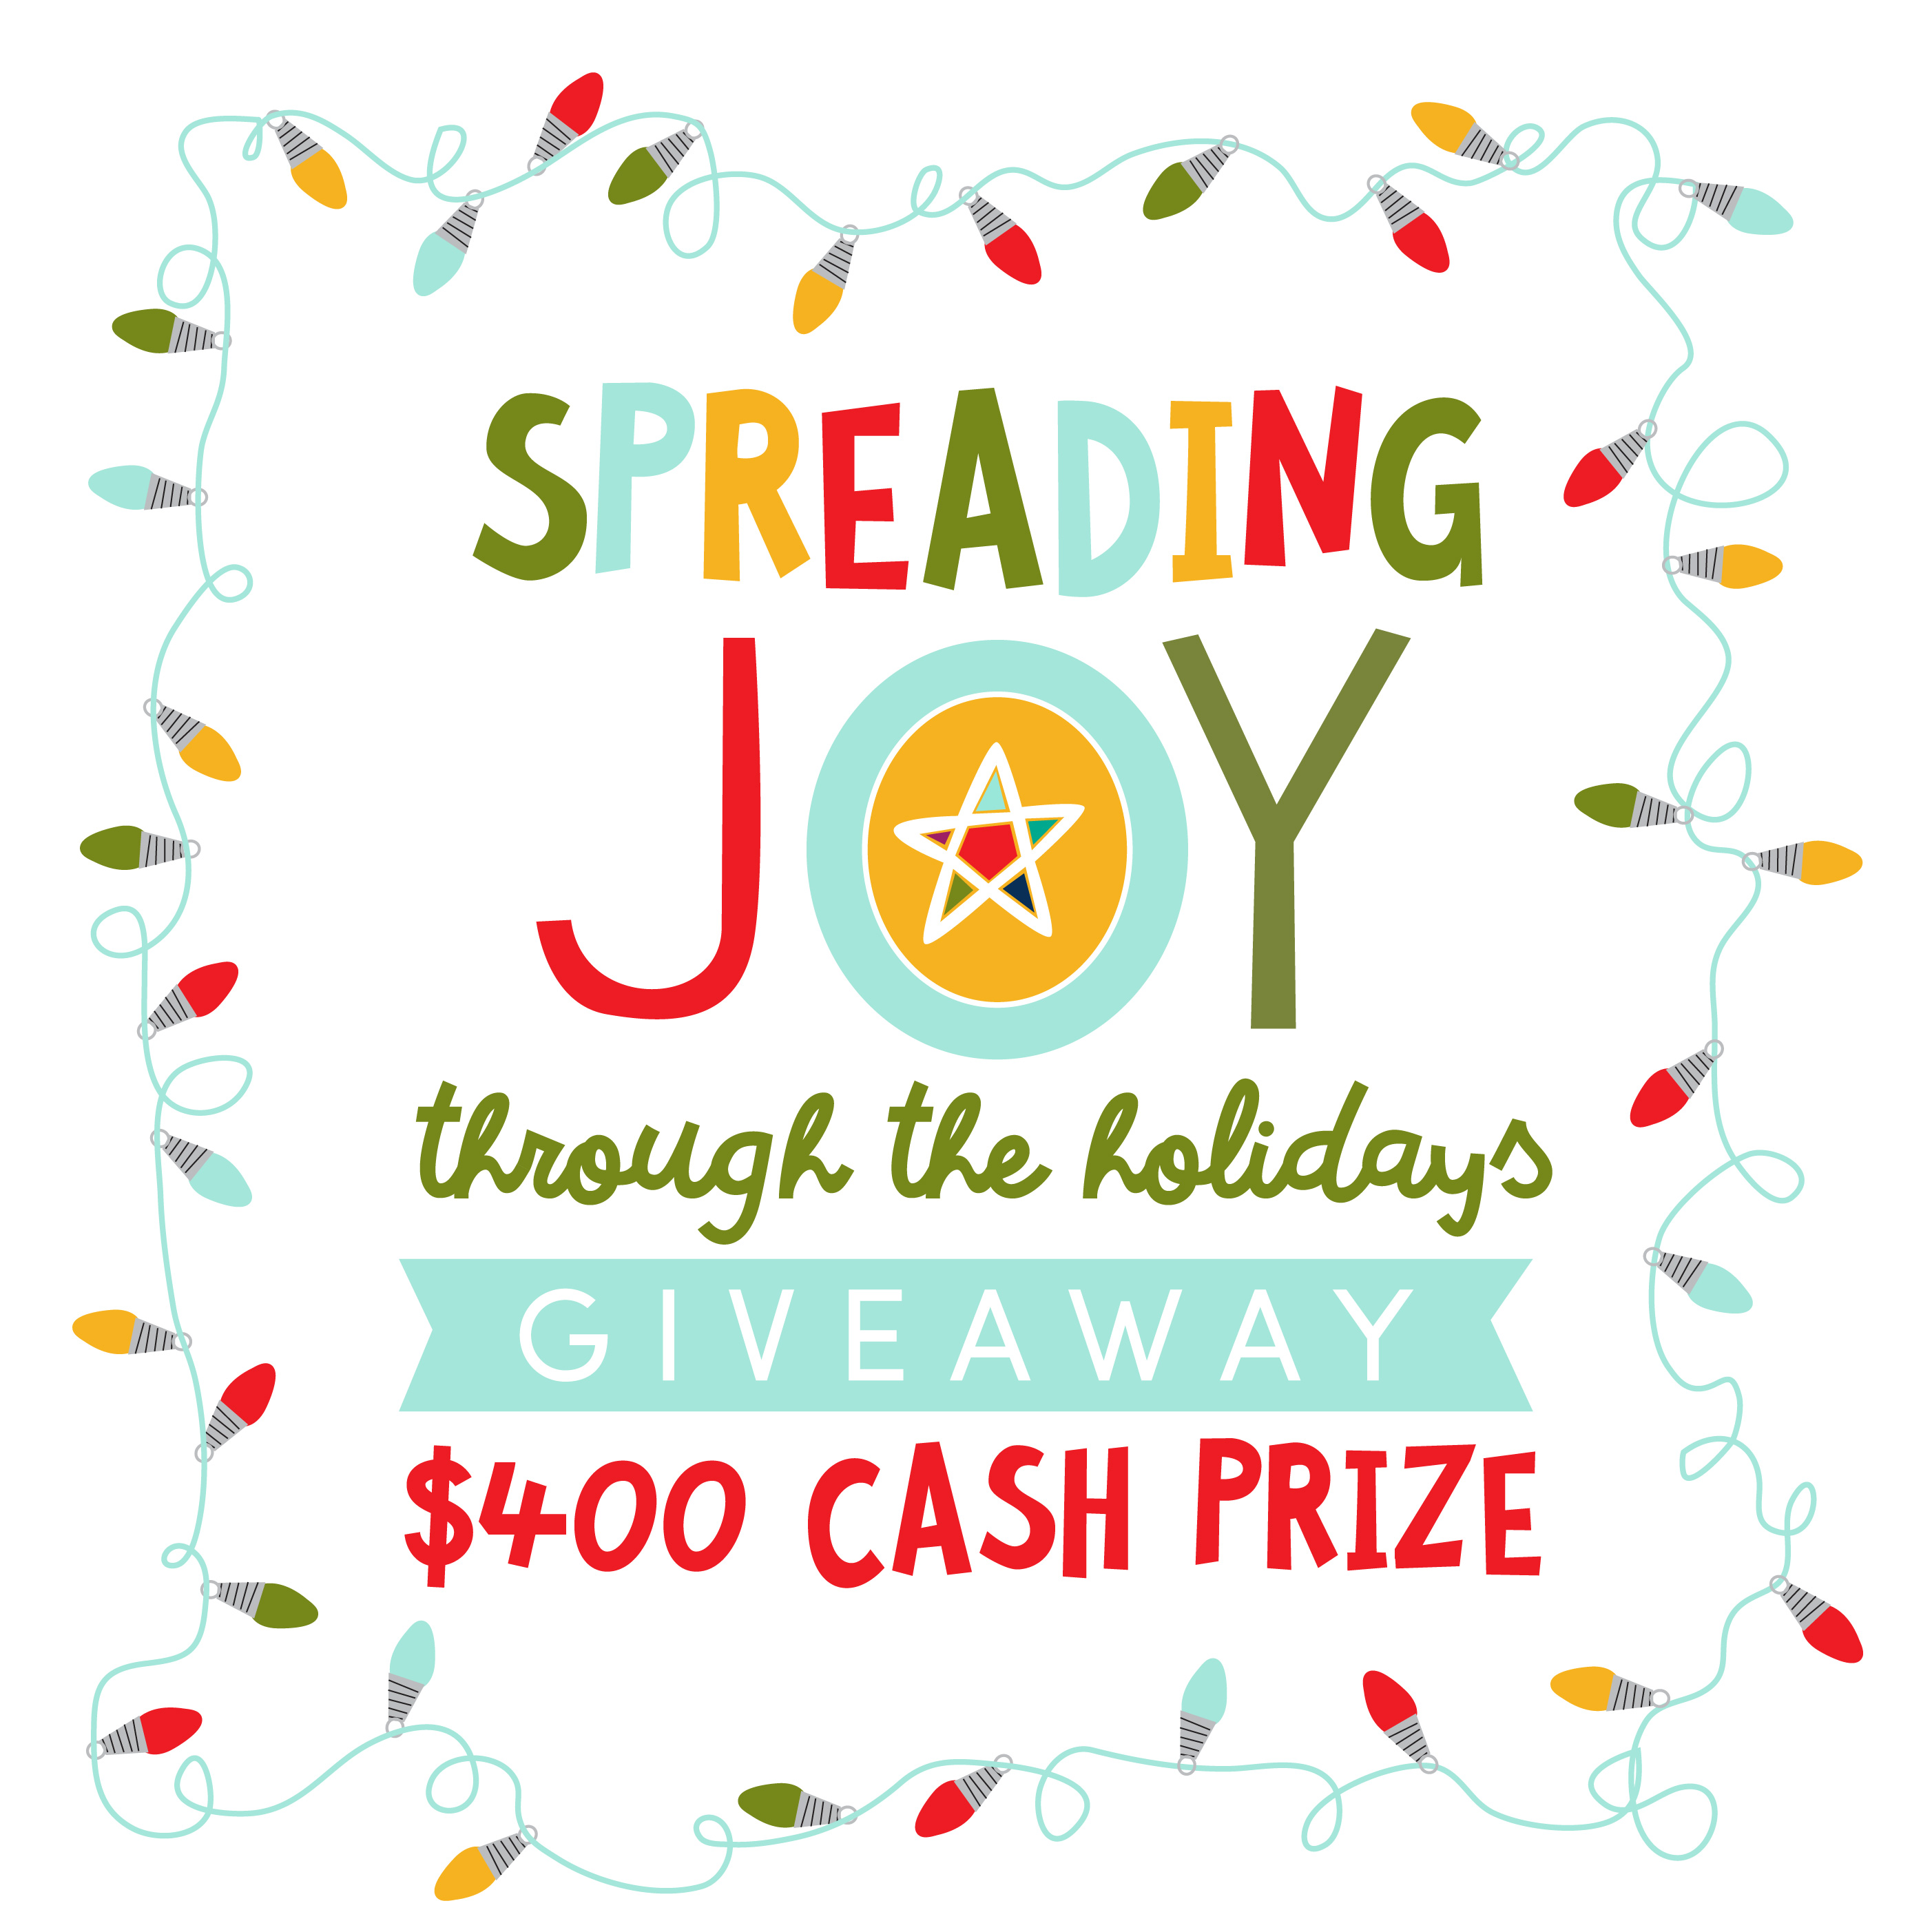 We are Spreading Joy Through The Holidays with a $400 Cash Prize Giveaway just in time for Cyber Monday.